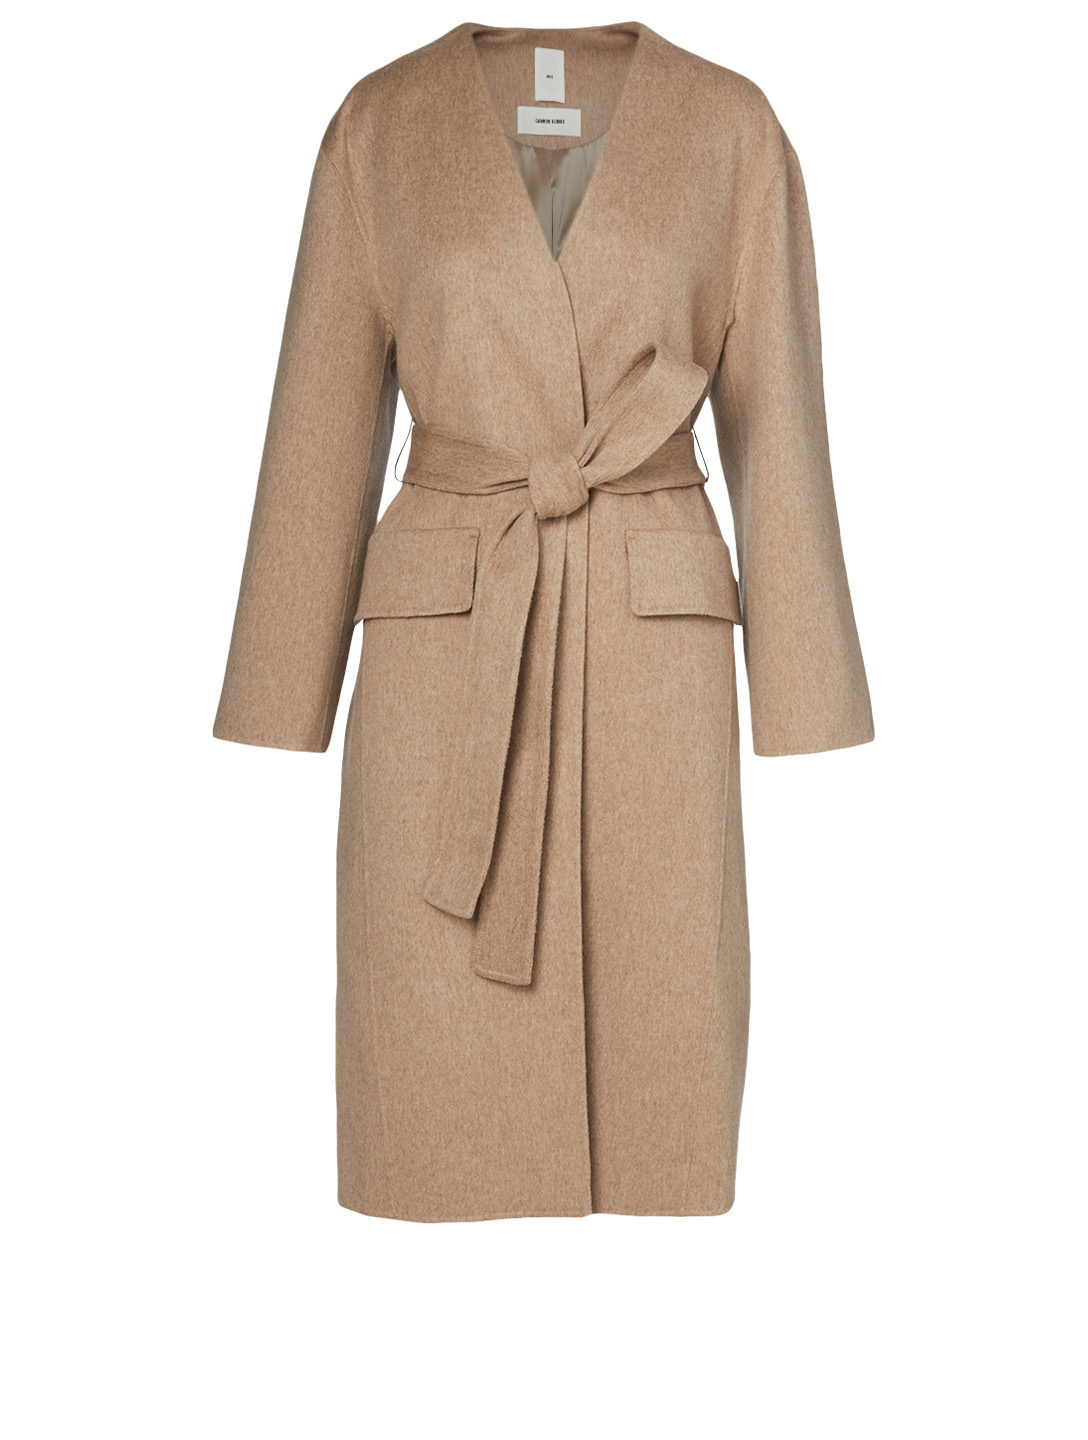 KUHO Wool And Cashmere Layered Coat Women's Neutral